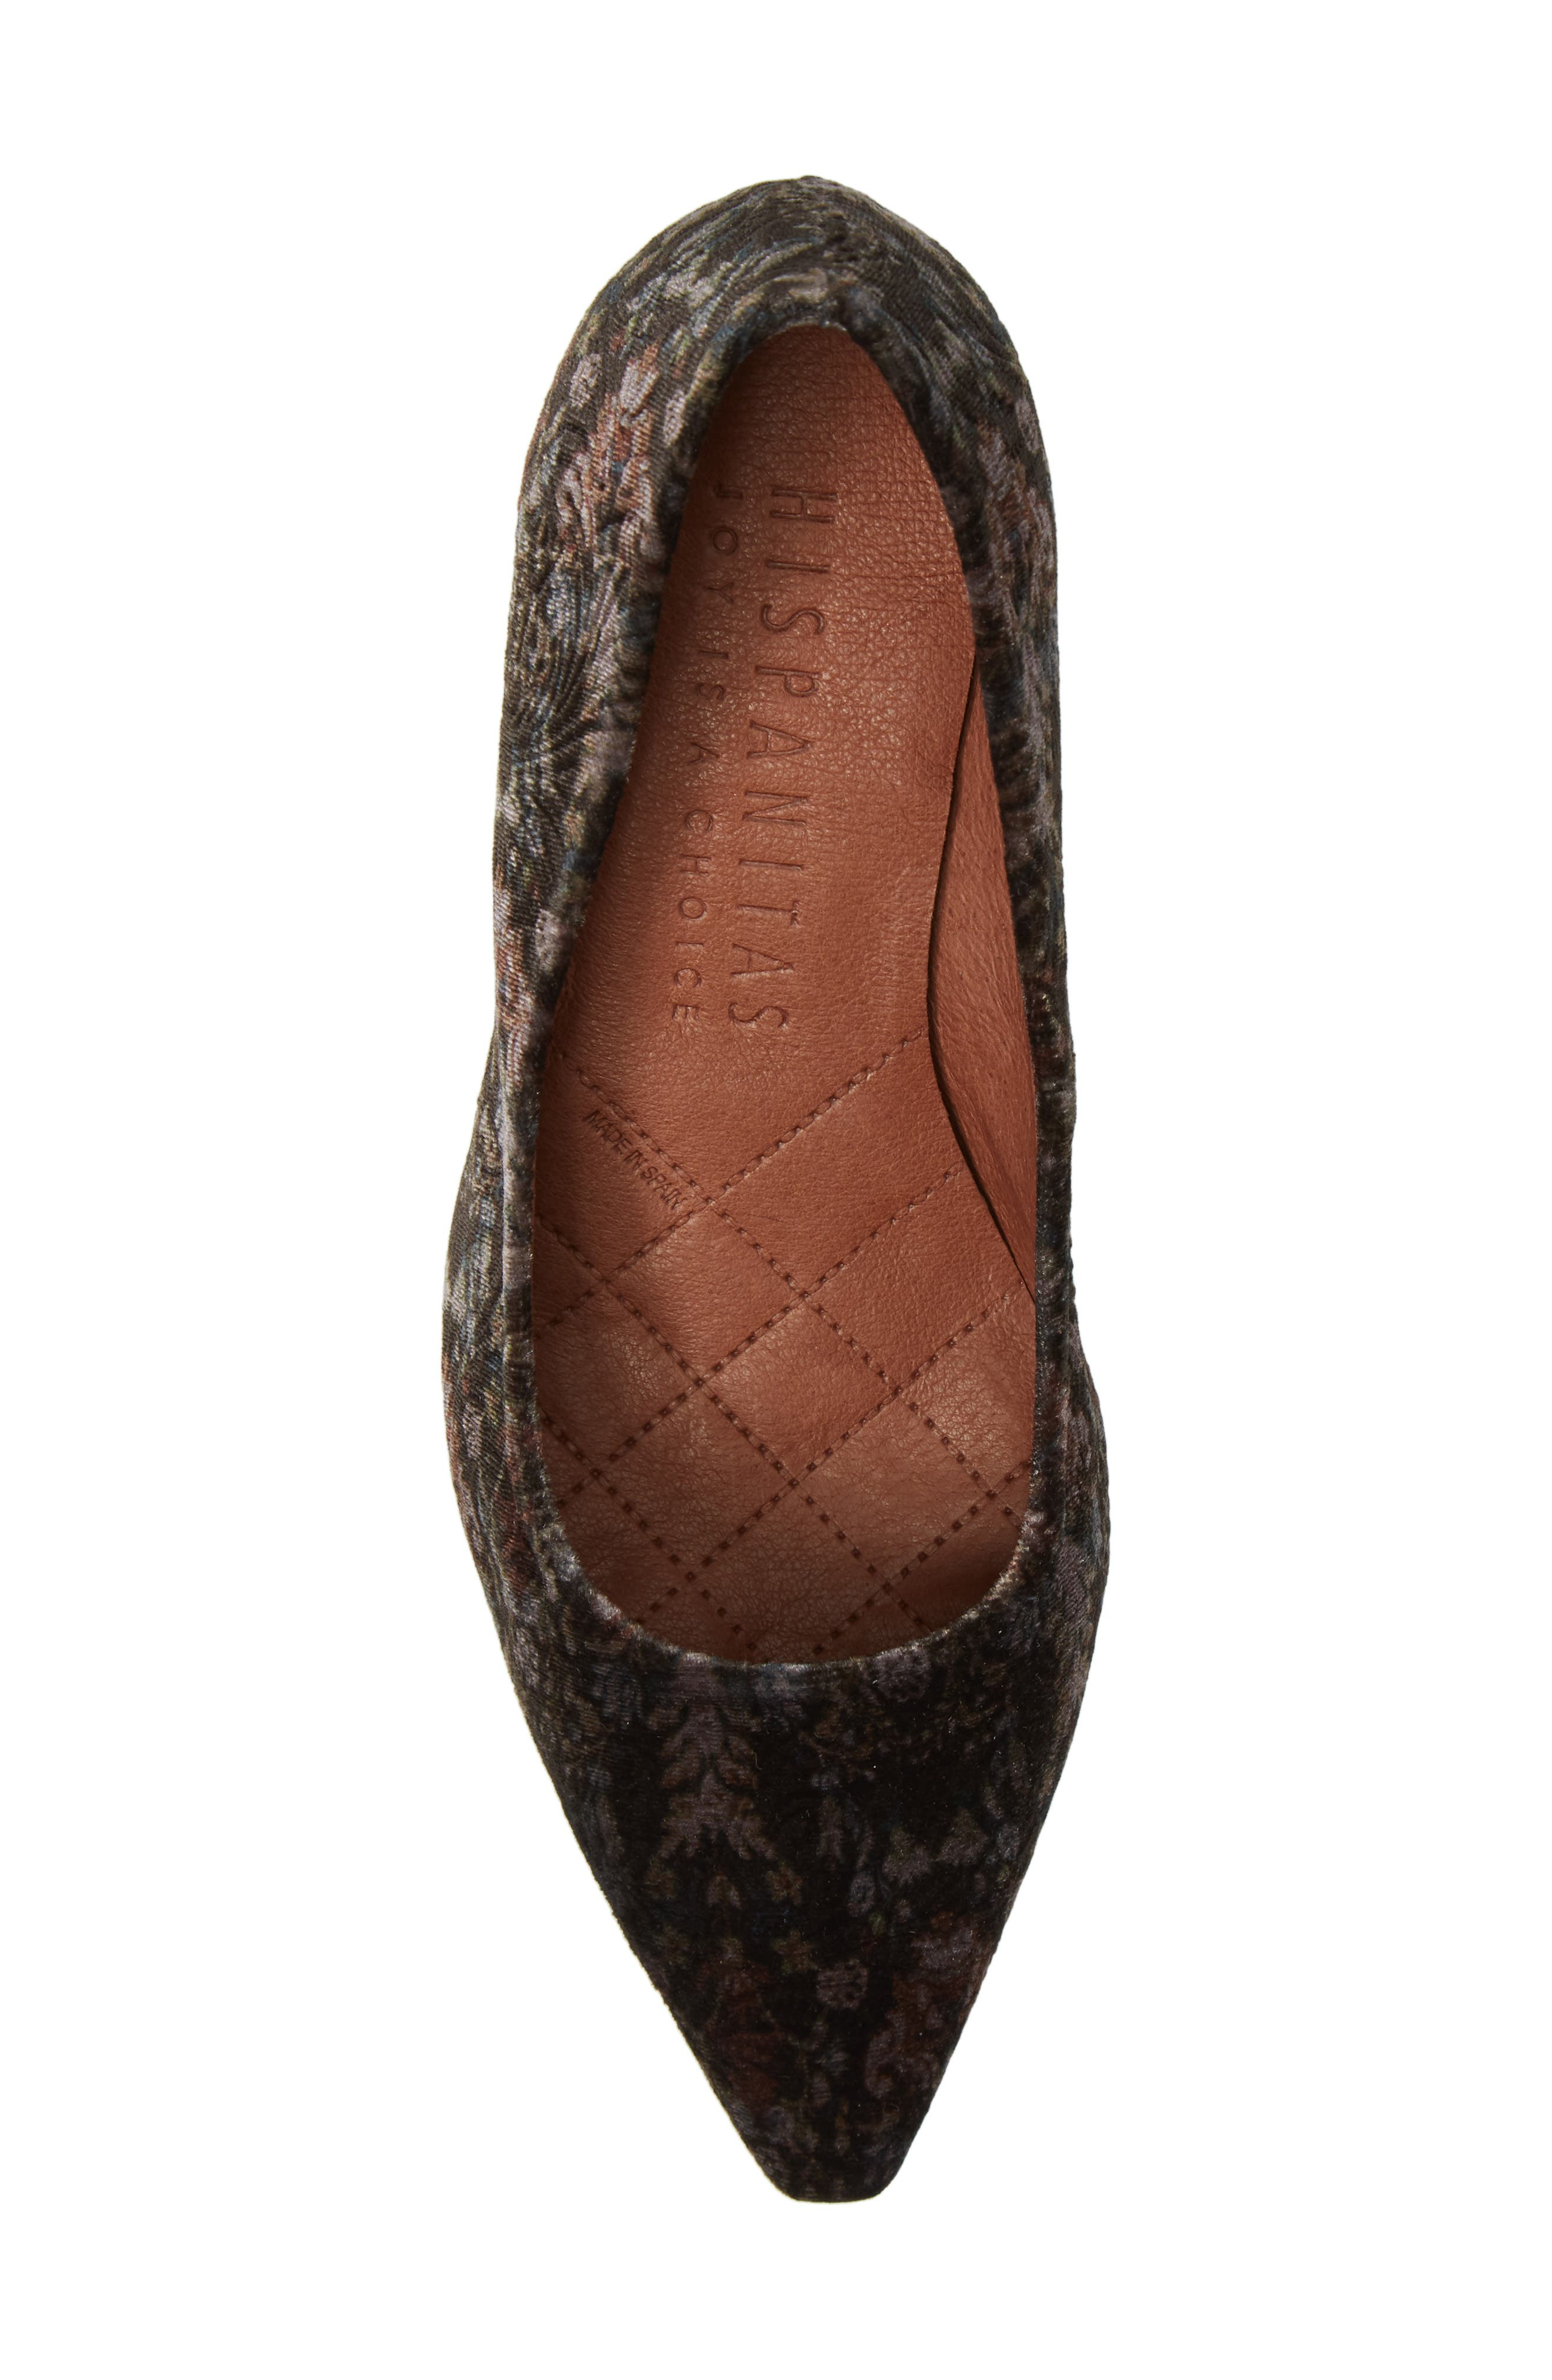 Carson Pointy Toe Pump,                             Alternate thumbnail 5, color,                             Grey Leather